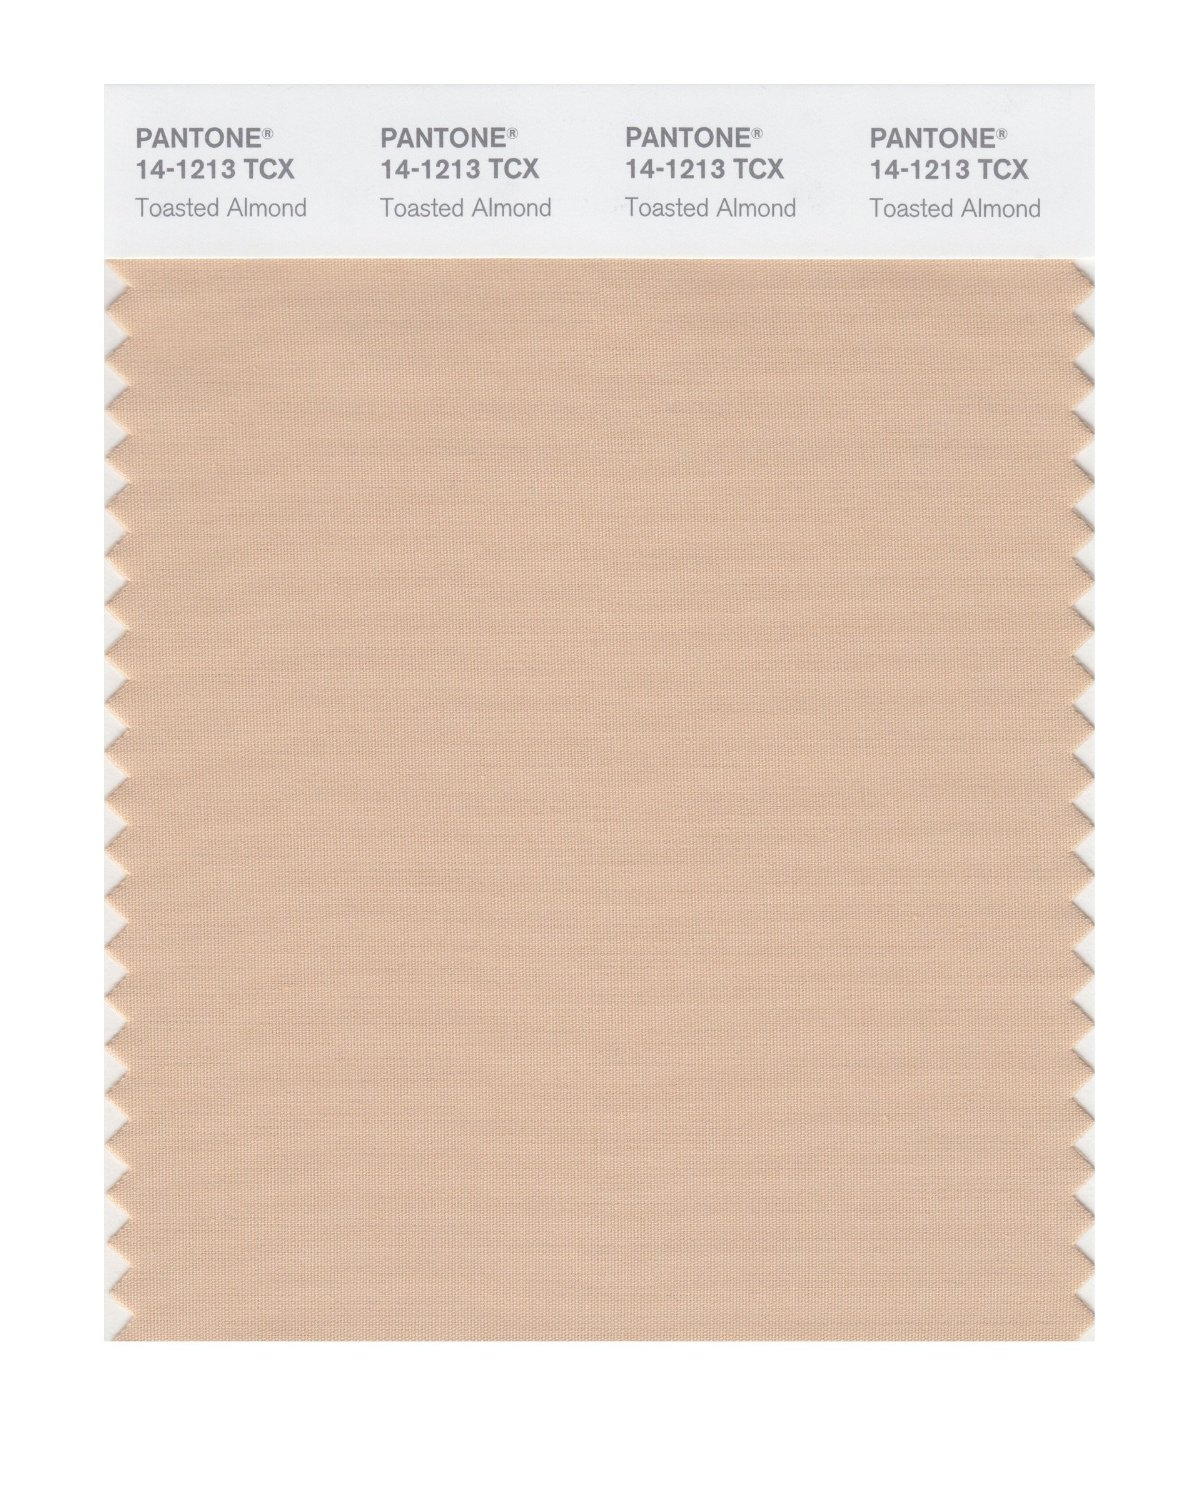 Pantone Smart Swatch 14-1213 Toasted Almond